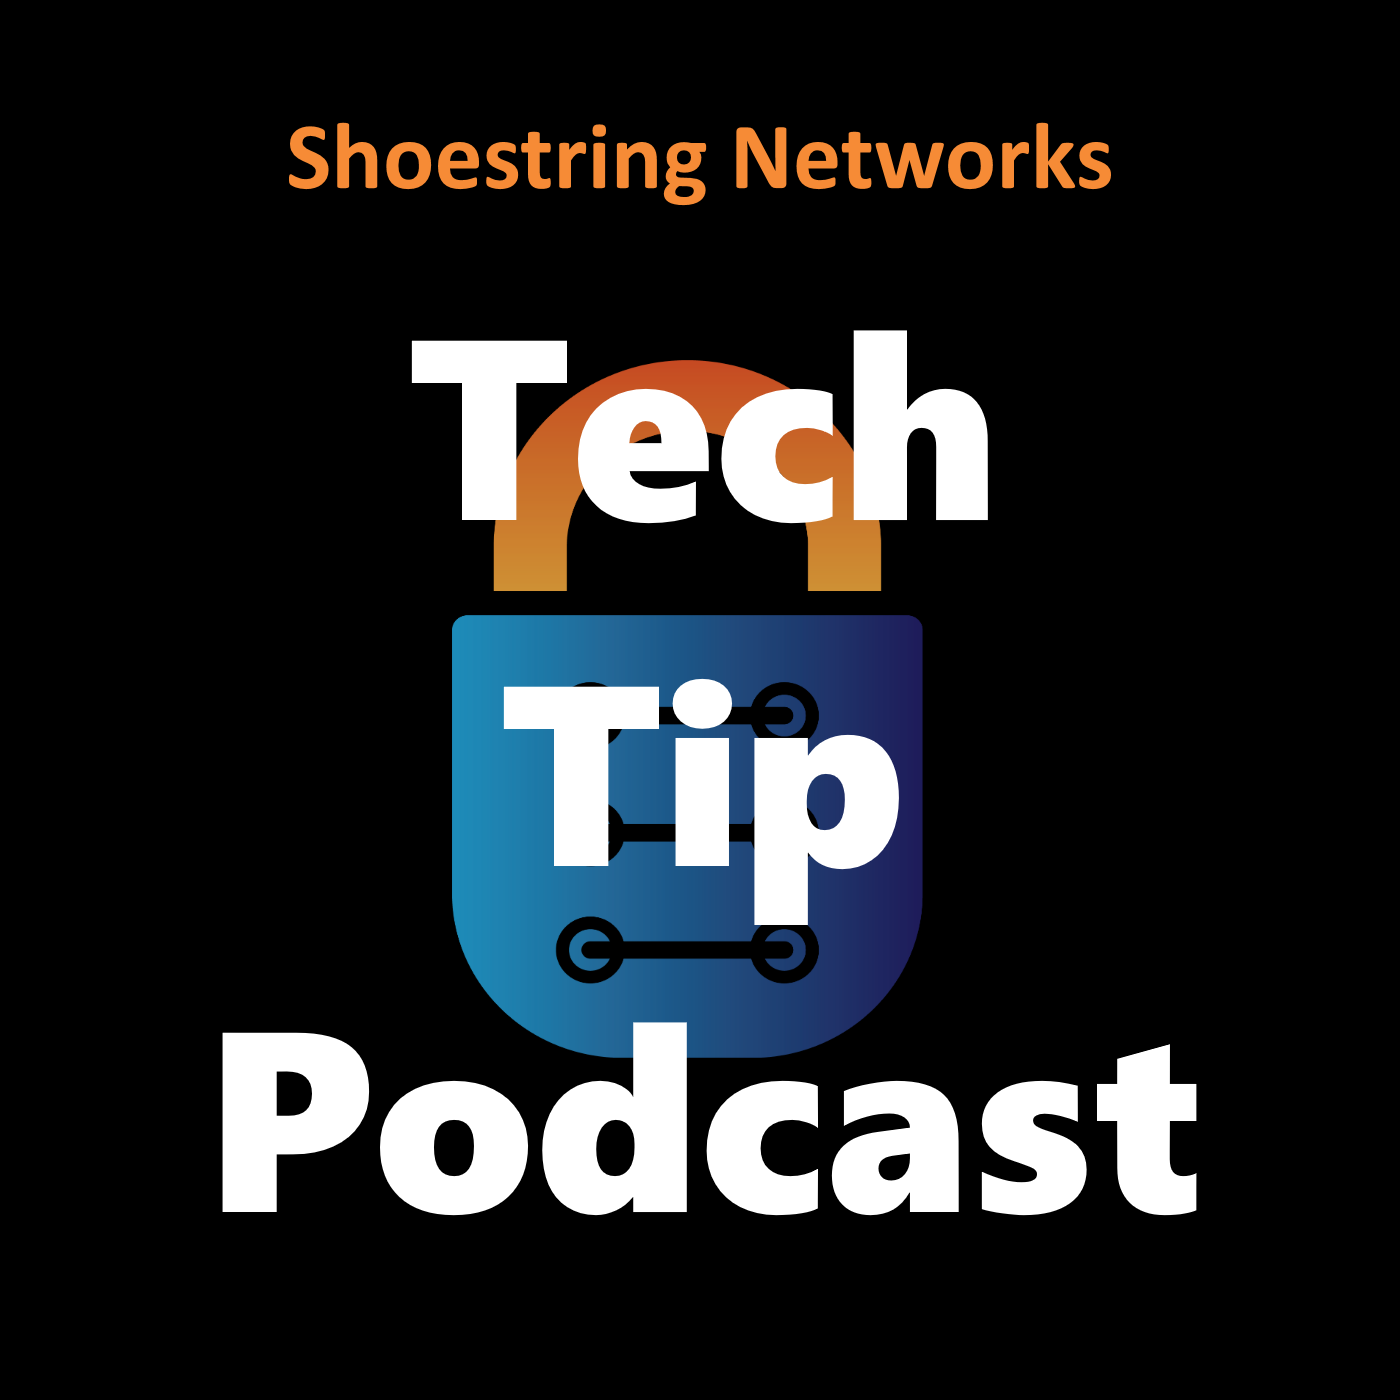 Shoestring Networks Tech Tip Podcast